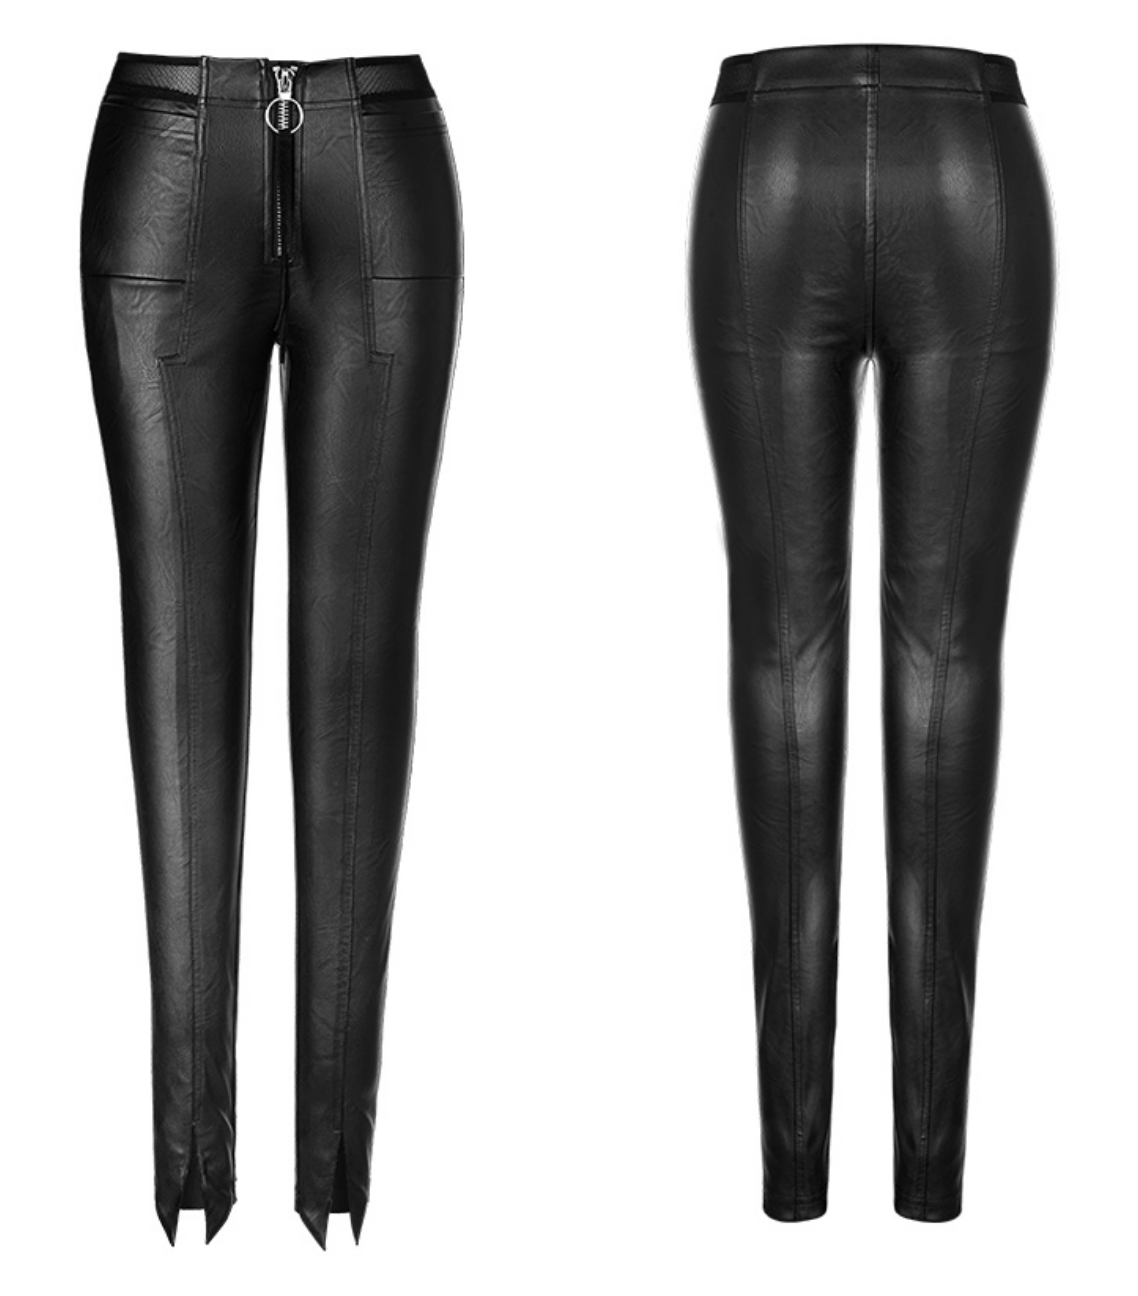 PNKR Skinny Leatherette Legging Pants